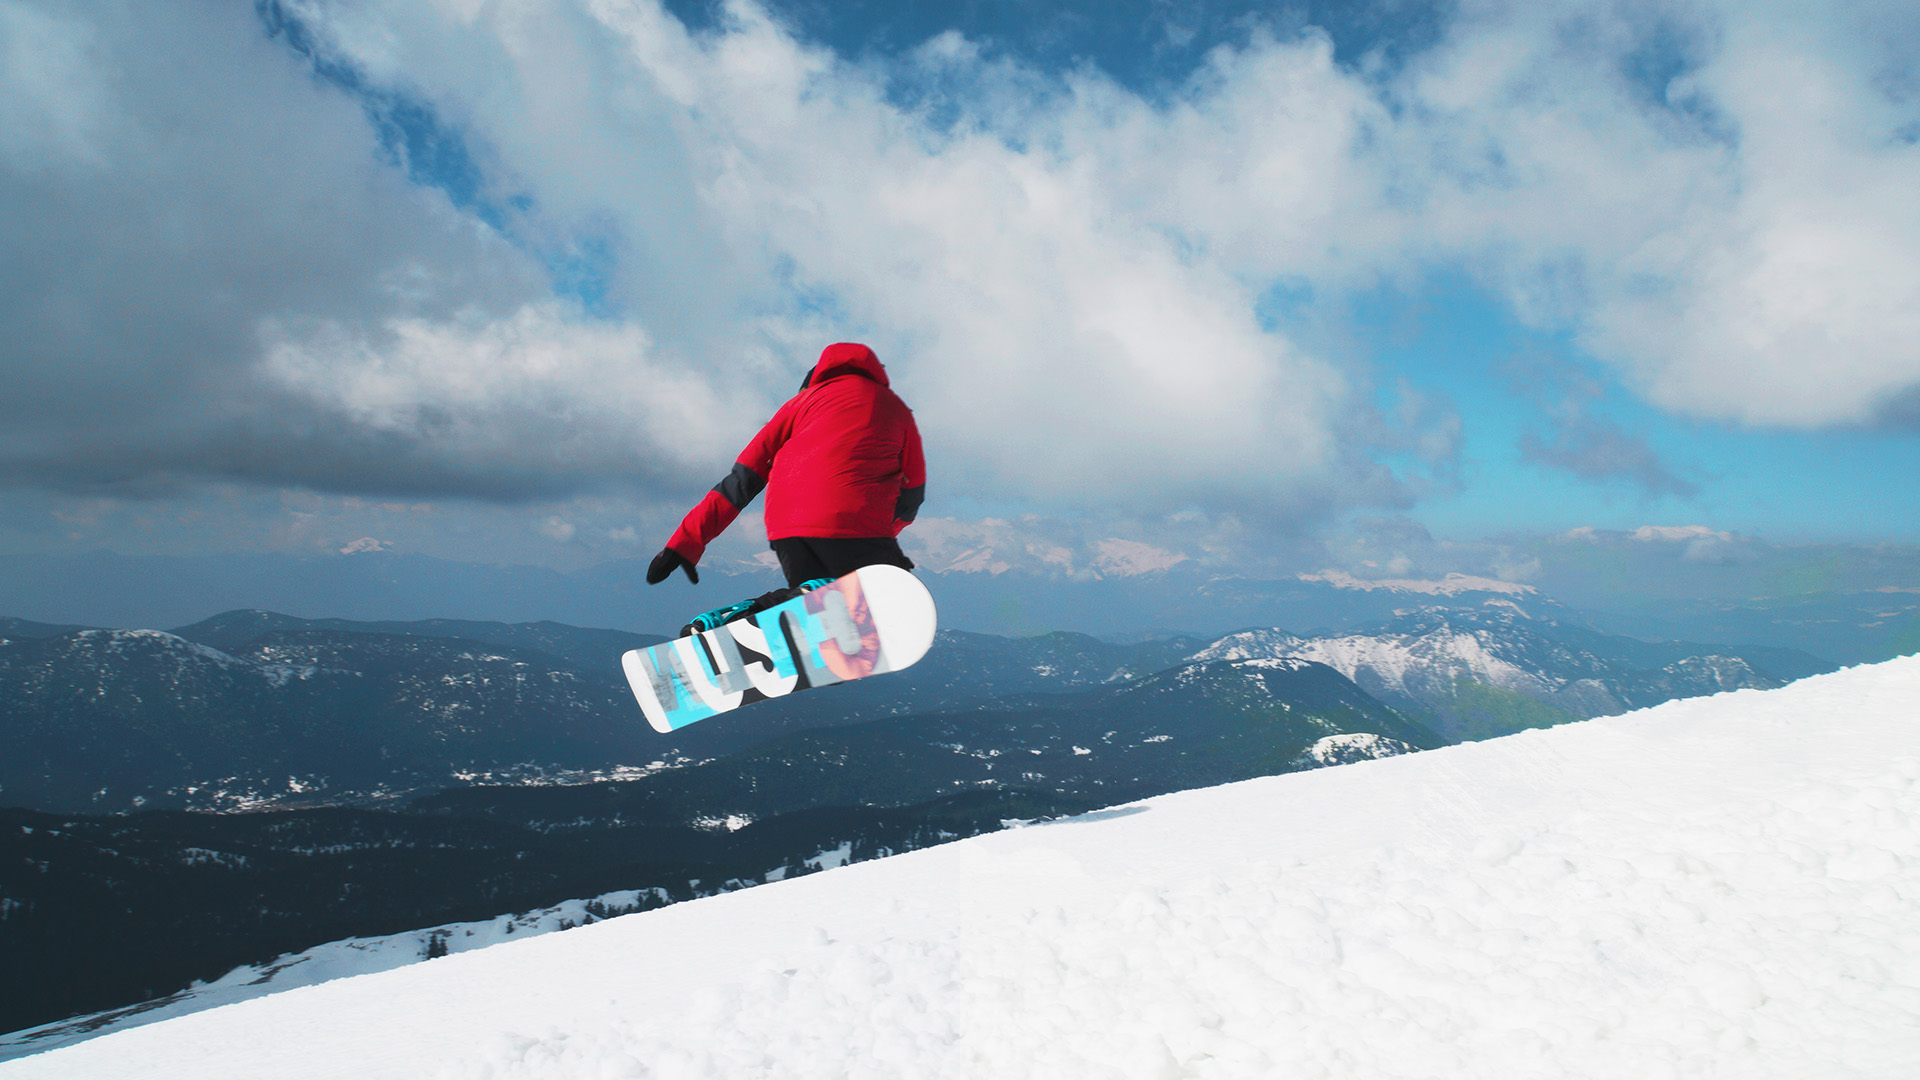 Snowboarding at Parnassos mountain